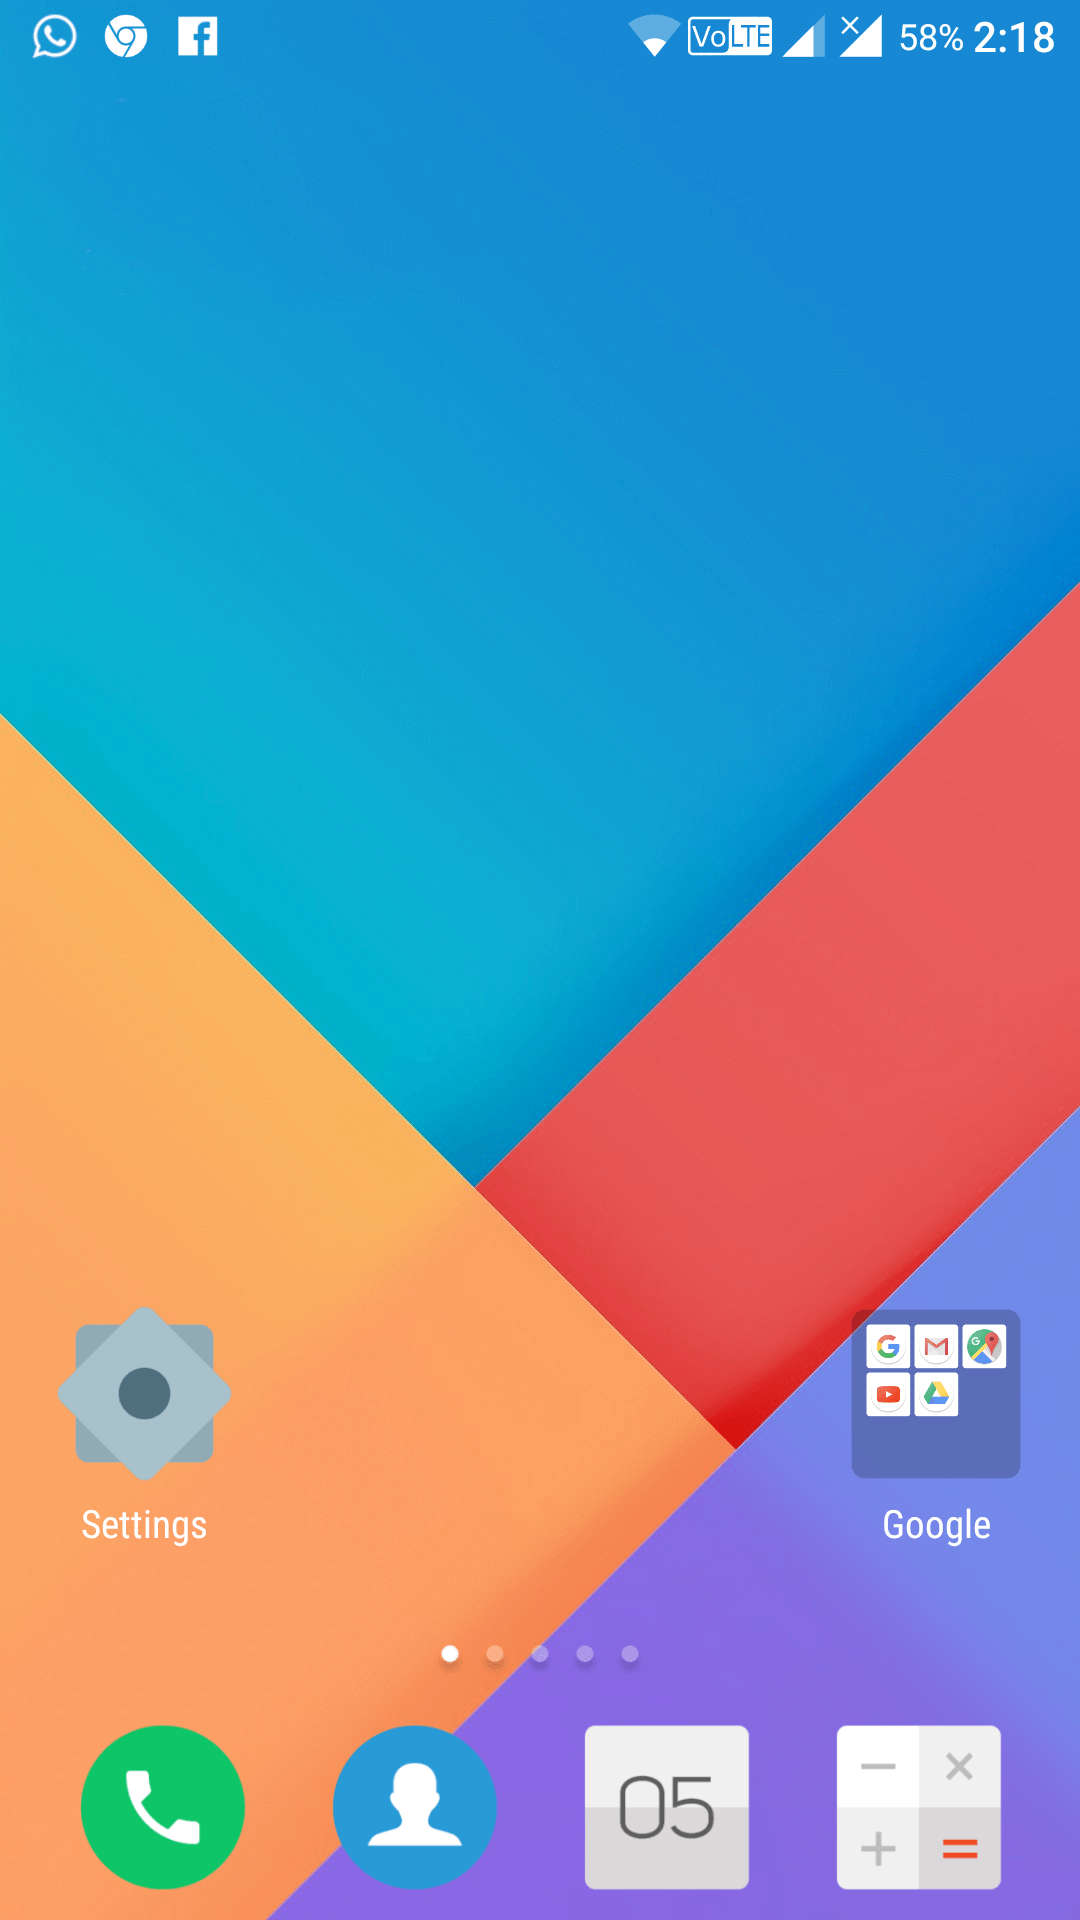 Download MIUI 9 Launcher apk on any Android with Wallpaper